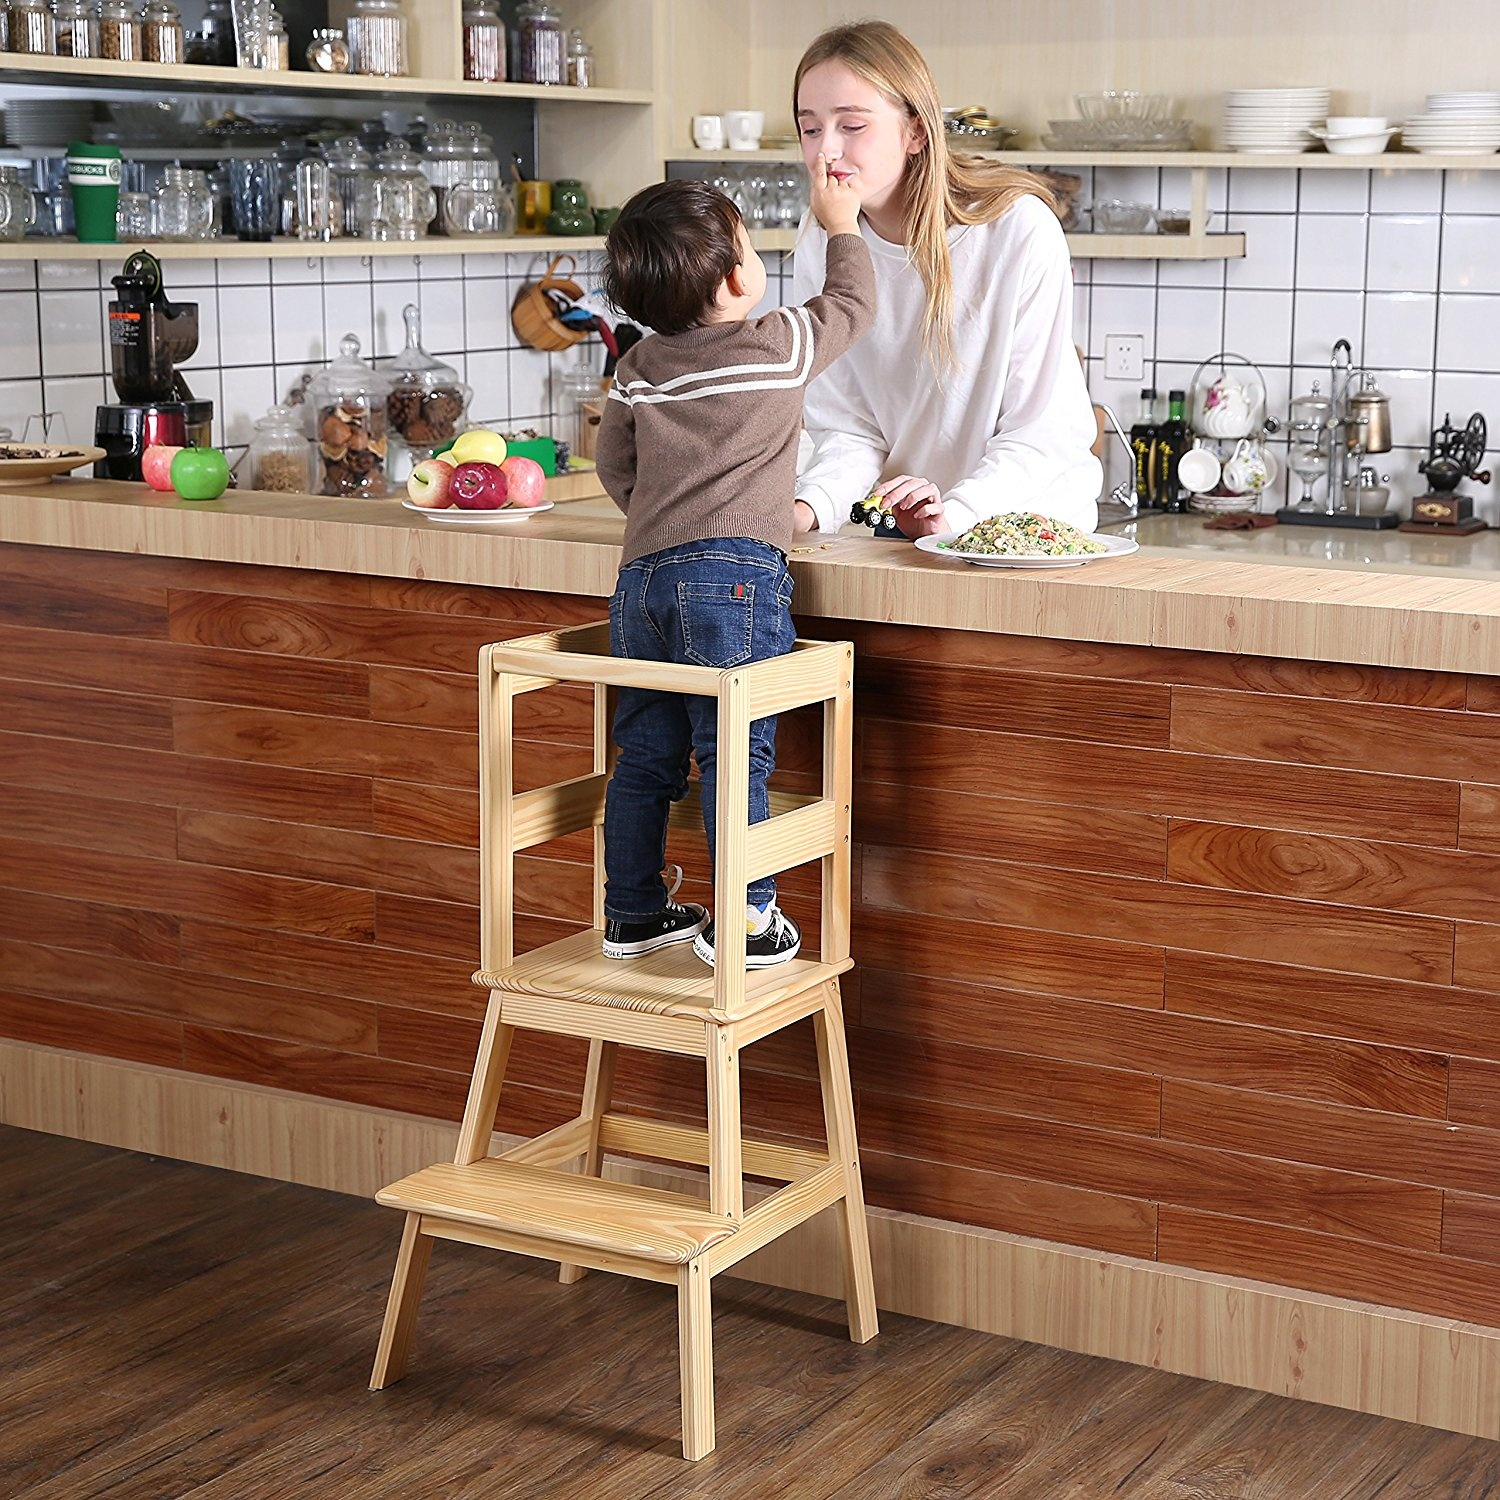 Fabulous Sdadi Learning Tower Kids Kitchen Helper Kitchen Step Stool With Safety Rail For Toddlers 18 Months And Older Solid Wood Natural Gmtry Best Dining Table And Chair Ideas Images Gmtryco